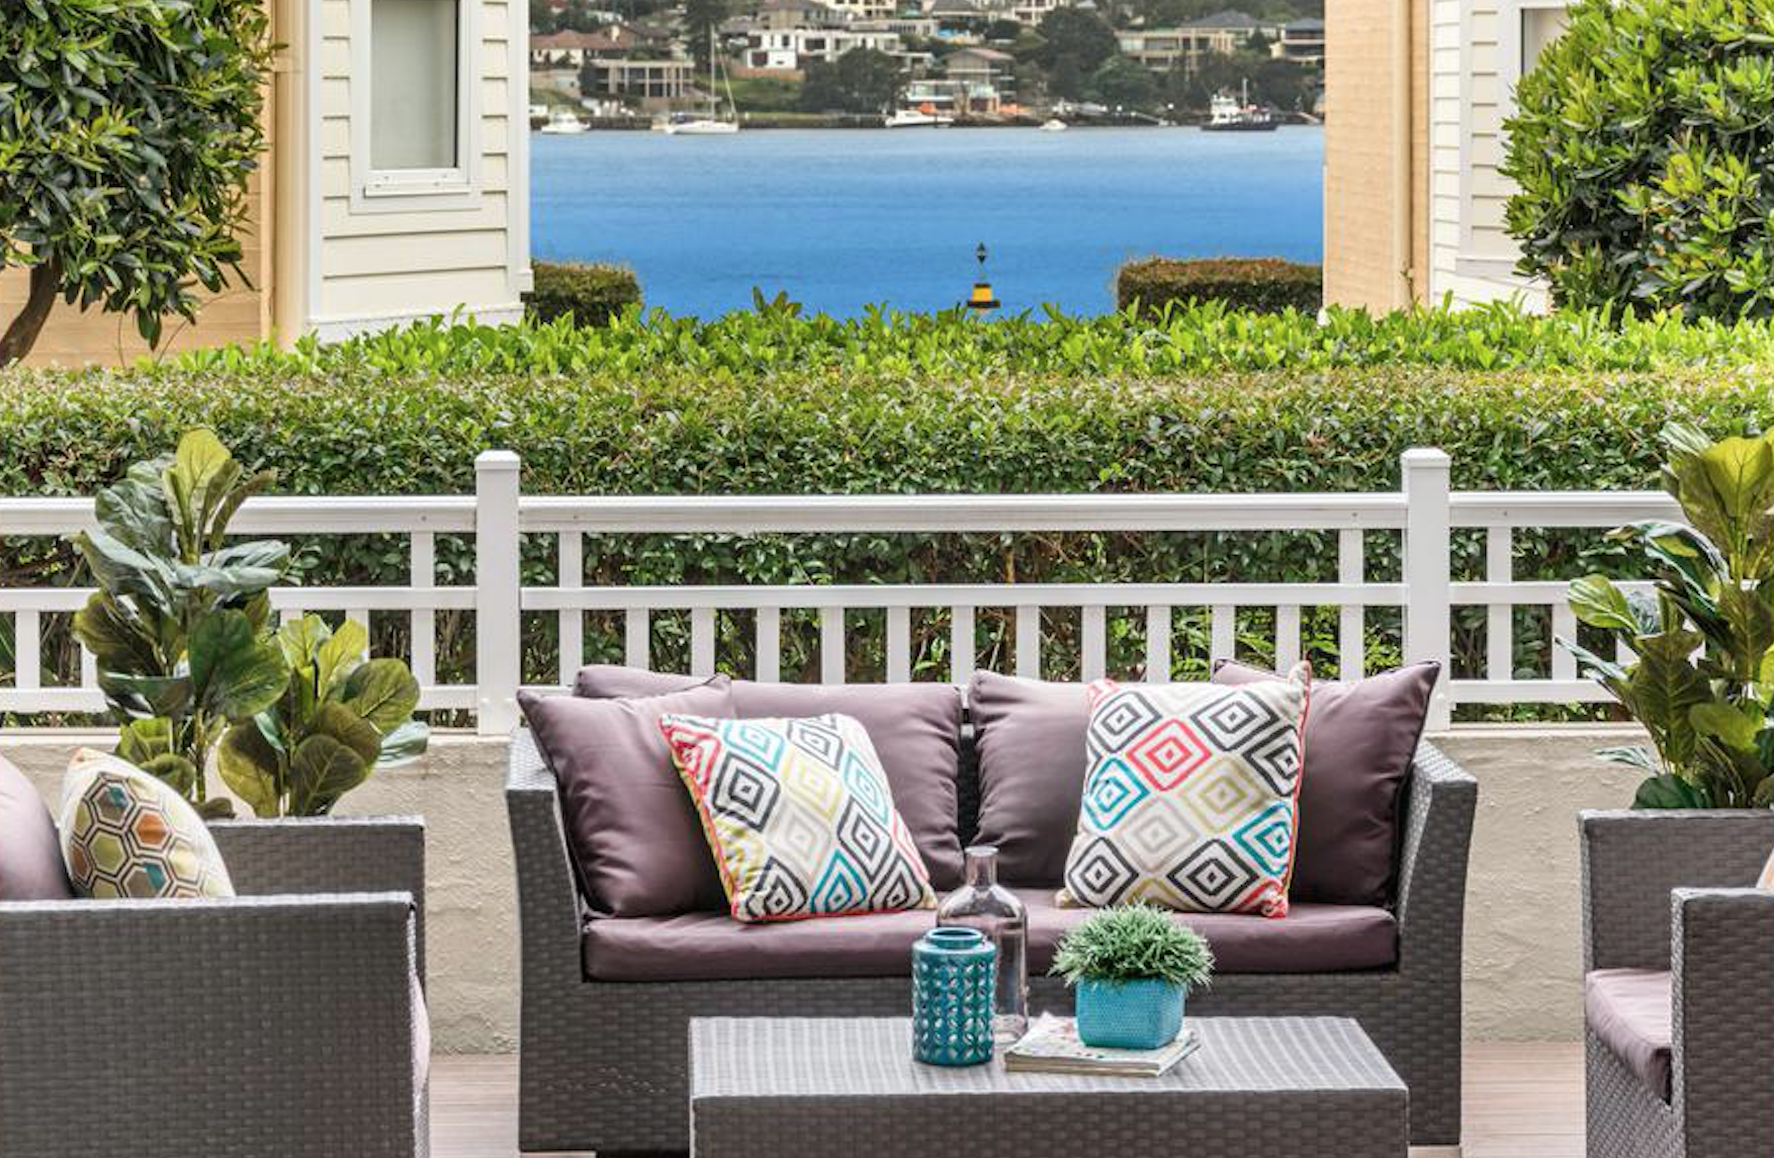 Luxury Living. JPA Auction Group | Outdoor furniture sets ... on Fine Living Patio Set id=34579